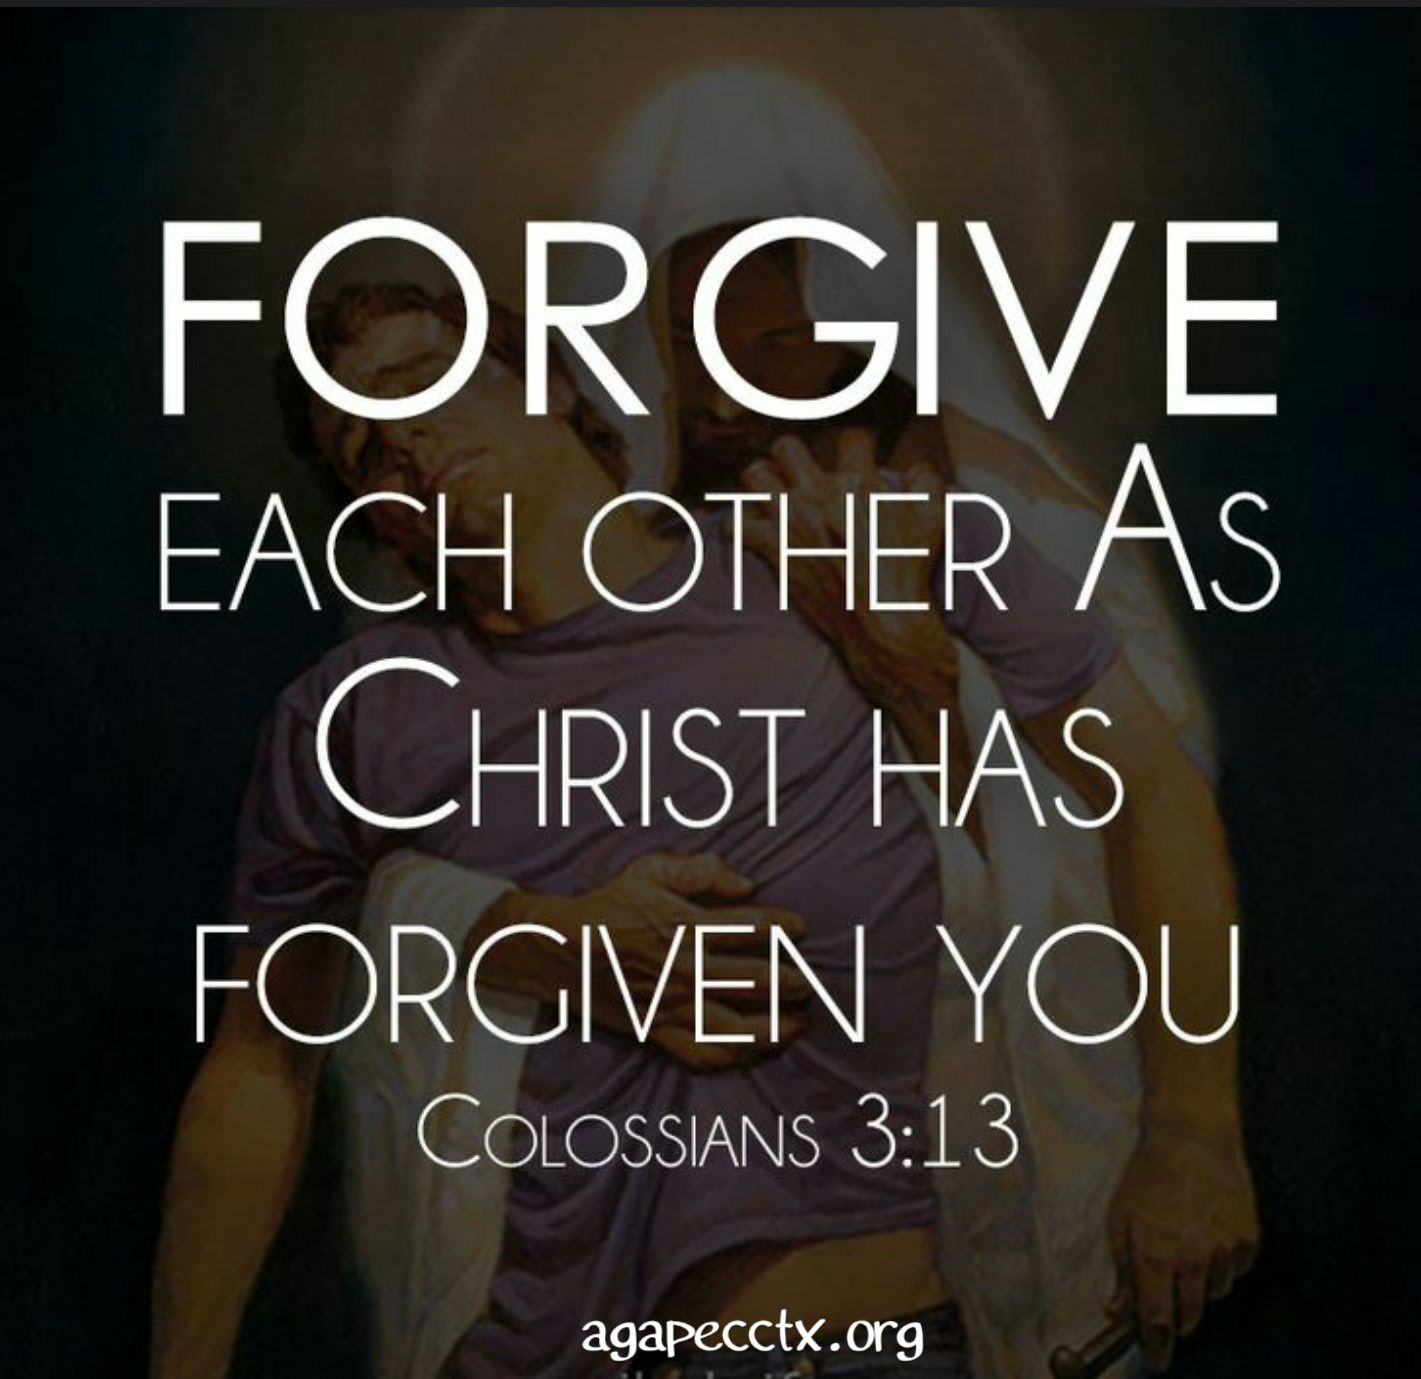 Christian Love Quotes Pinagape Christian Church On Worship With Agape  Pinterest